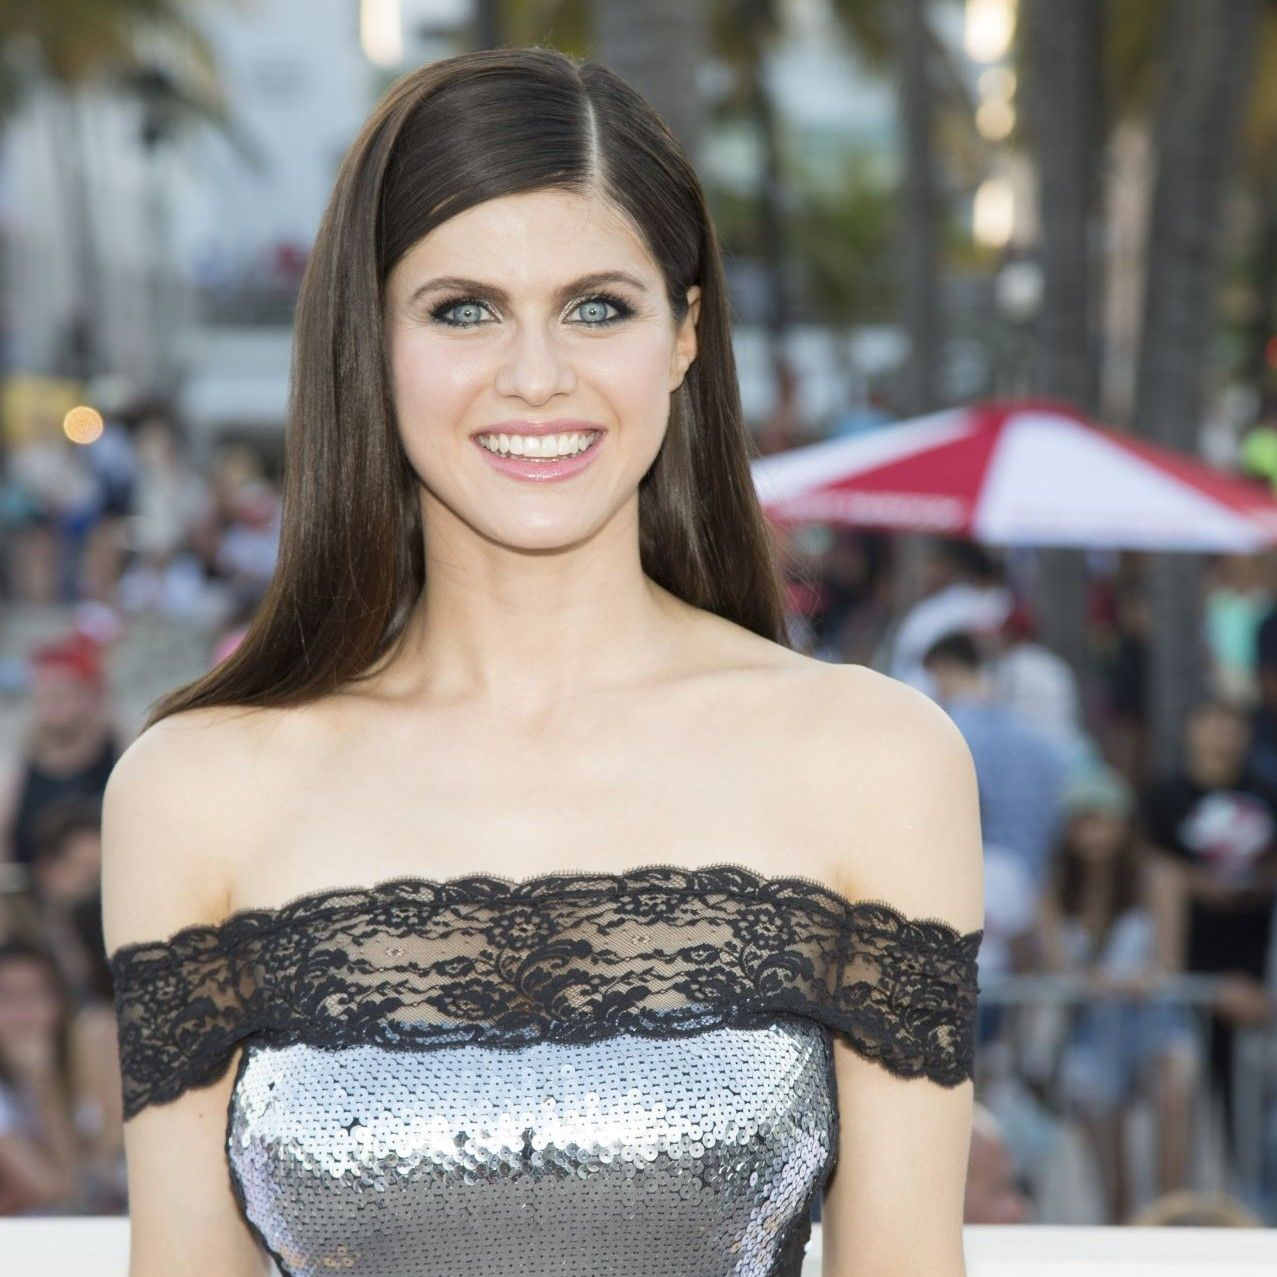 Pin By The Bold K On Too Hot To Handle Alexandra Daddario